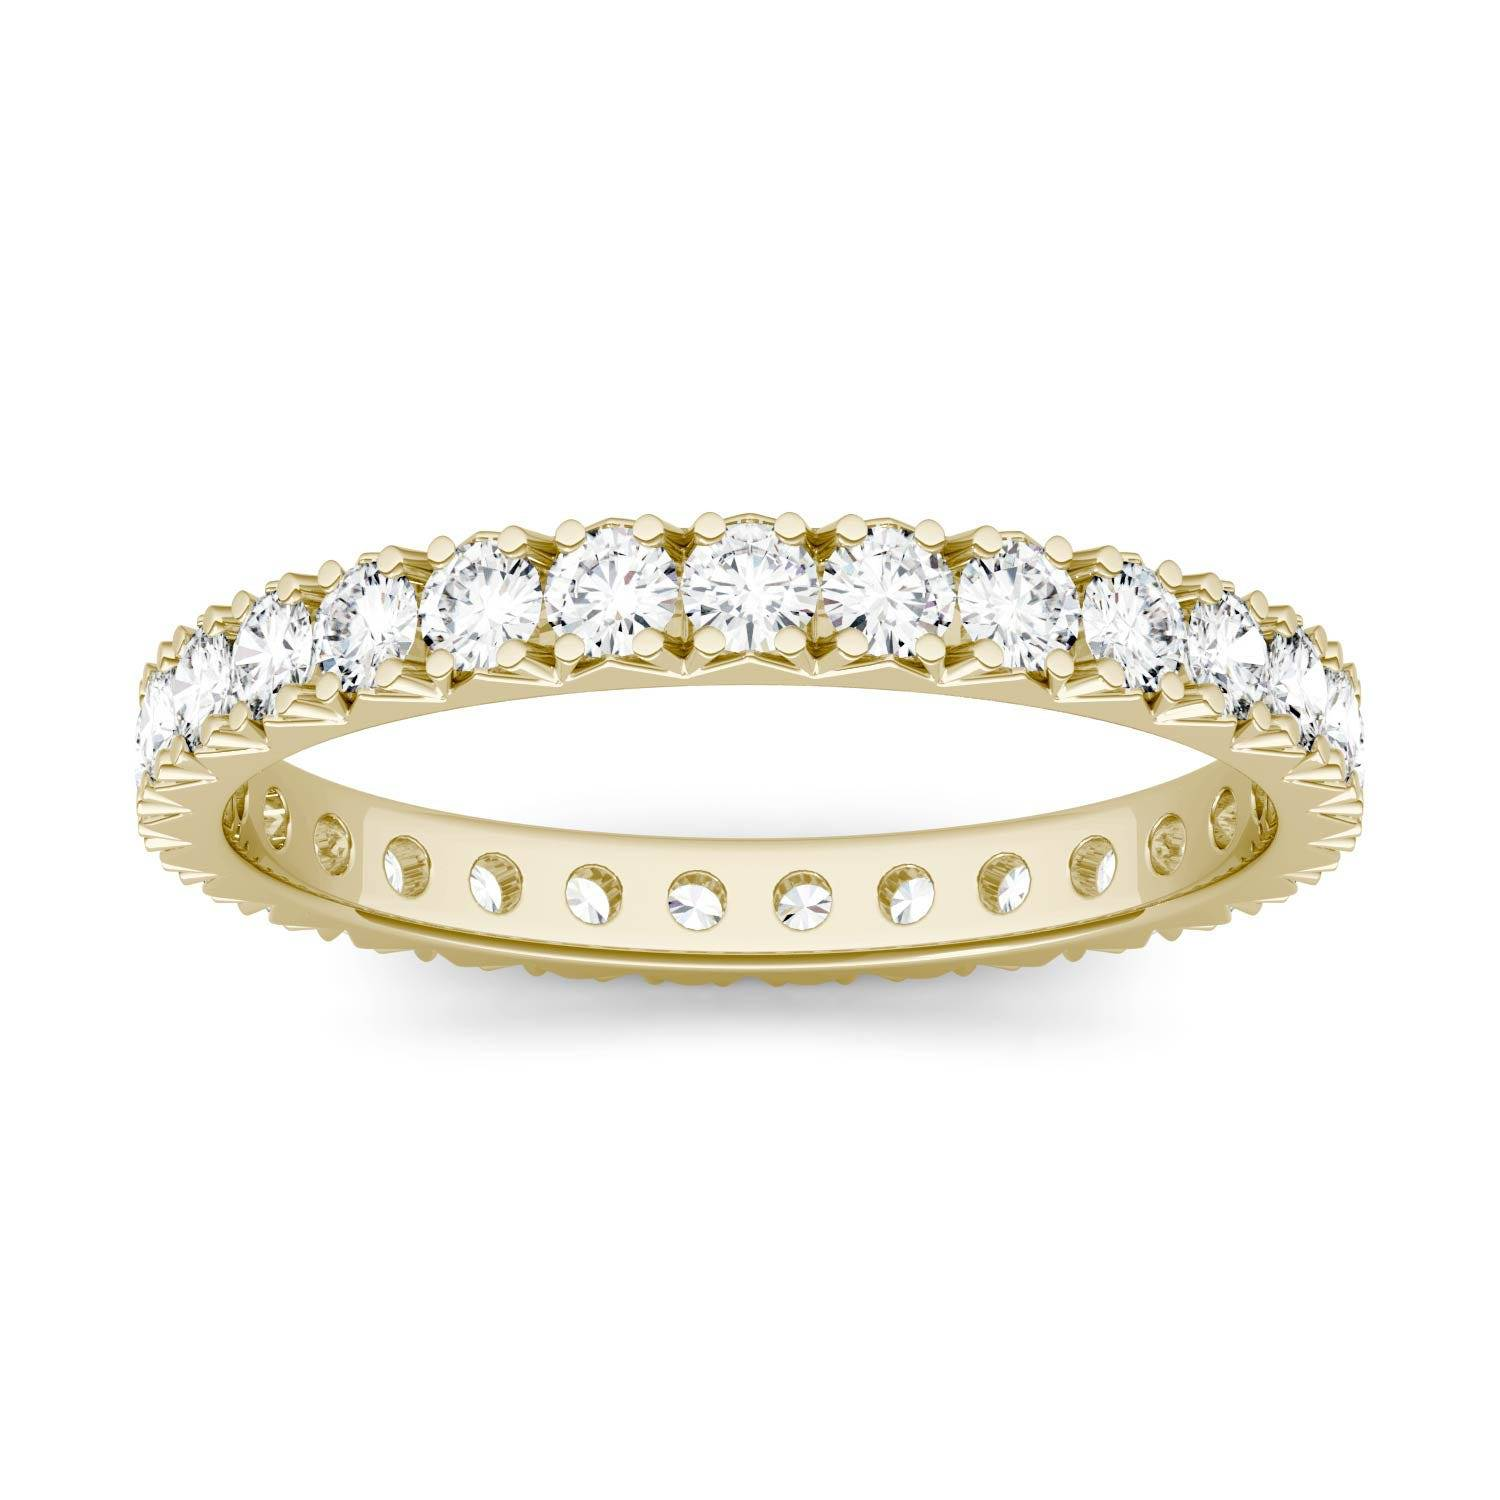 Charles & Colvard Eternity Prong Set Band Wedding Ring in 14K Yellow Gold, Size: 6, 1.00CTW Round Forever One Moissanite Accent Stones Charles & Colvard  - Yellow Gold - Size: 6